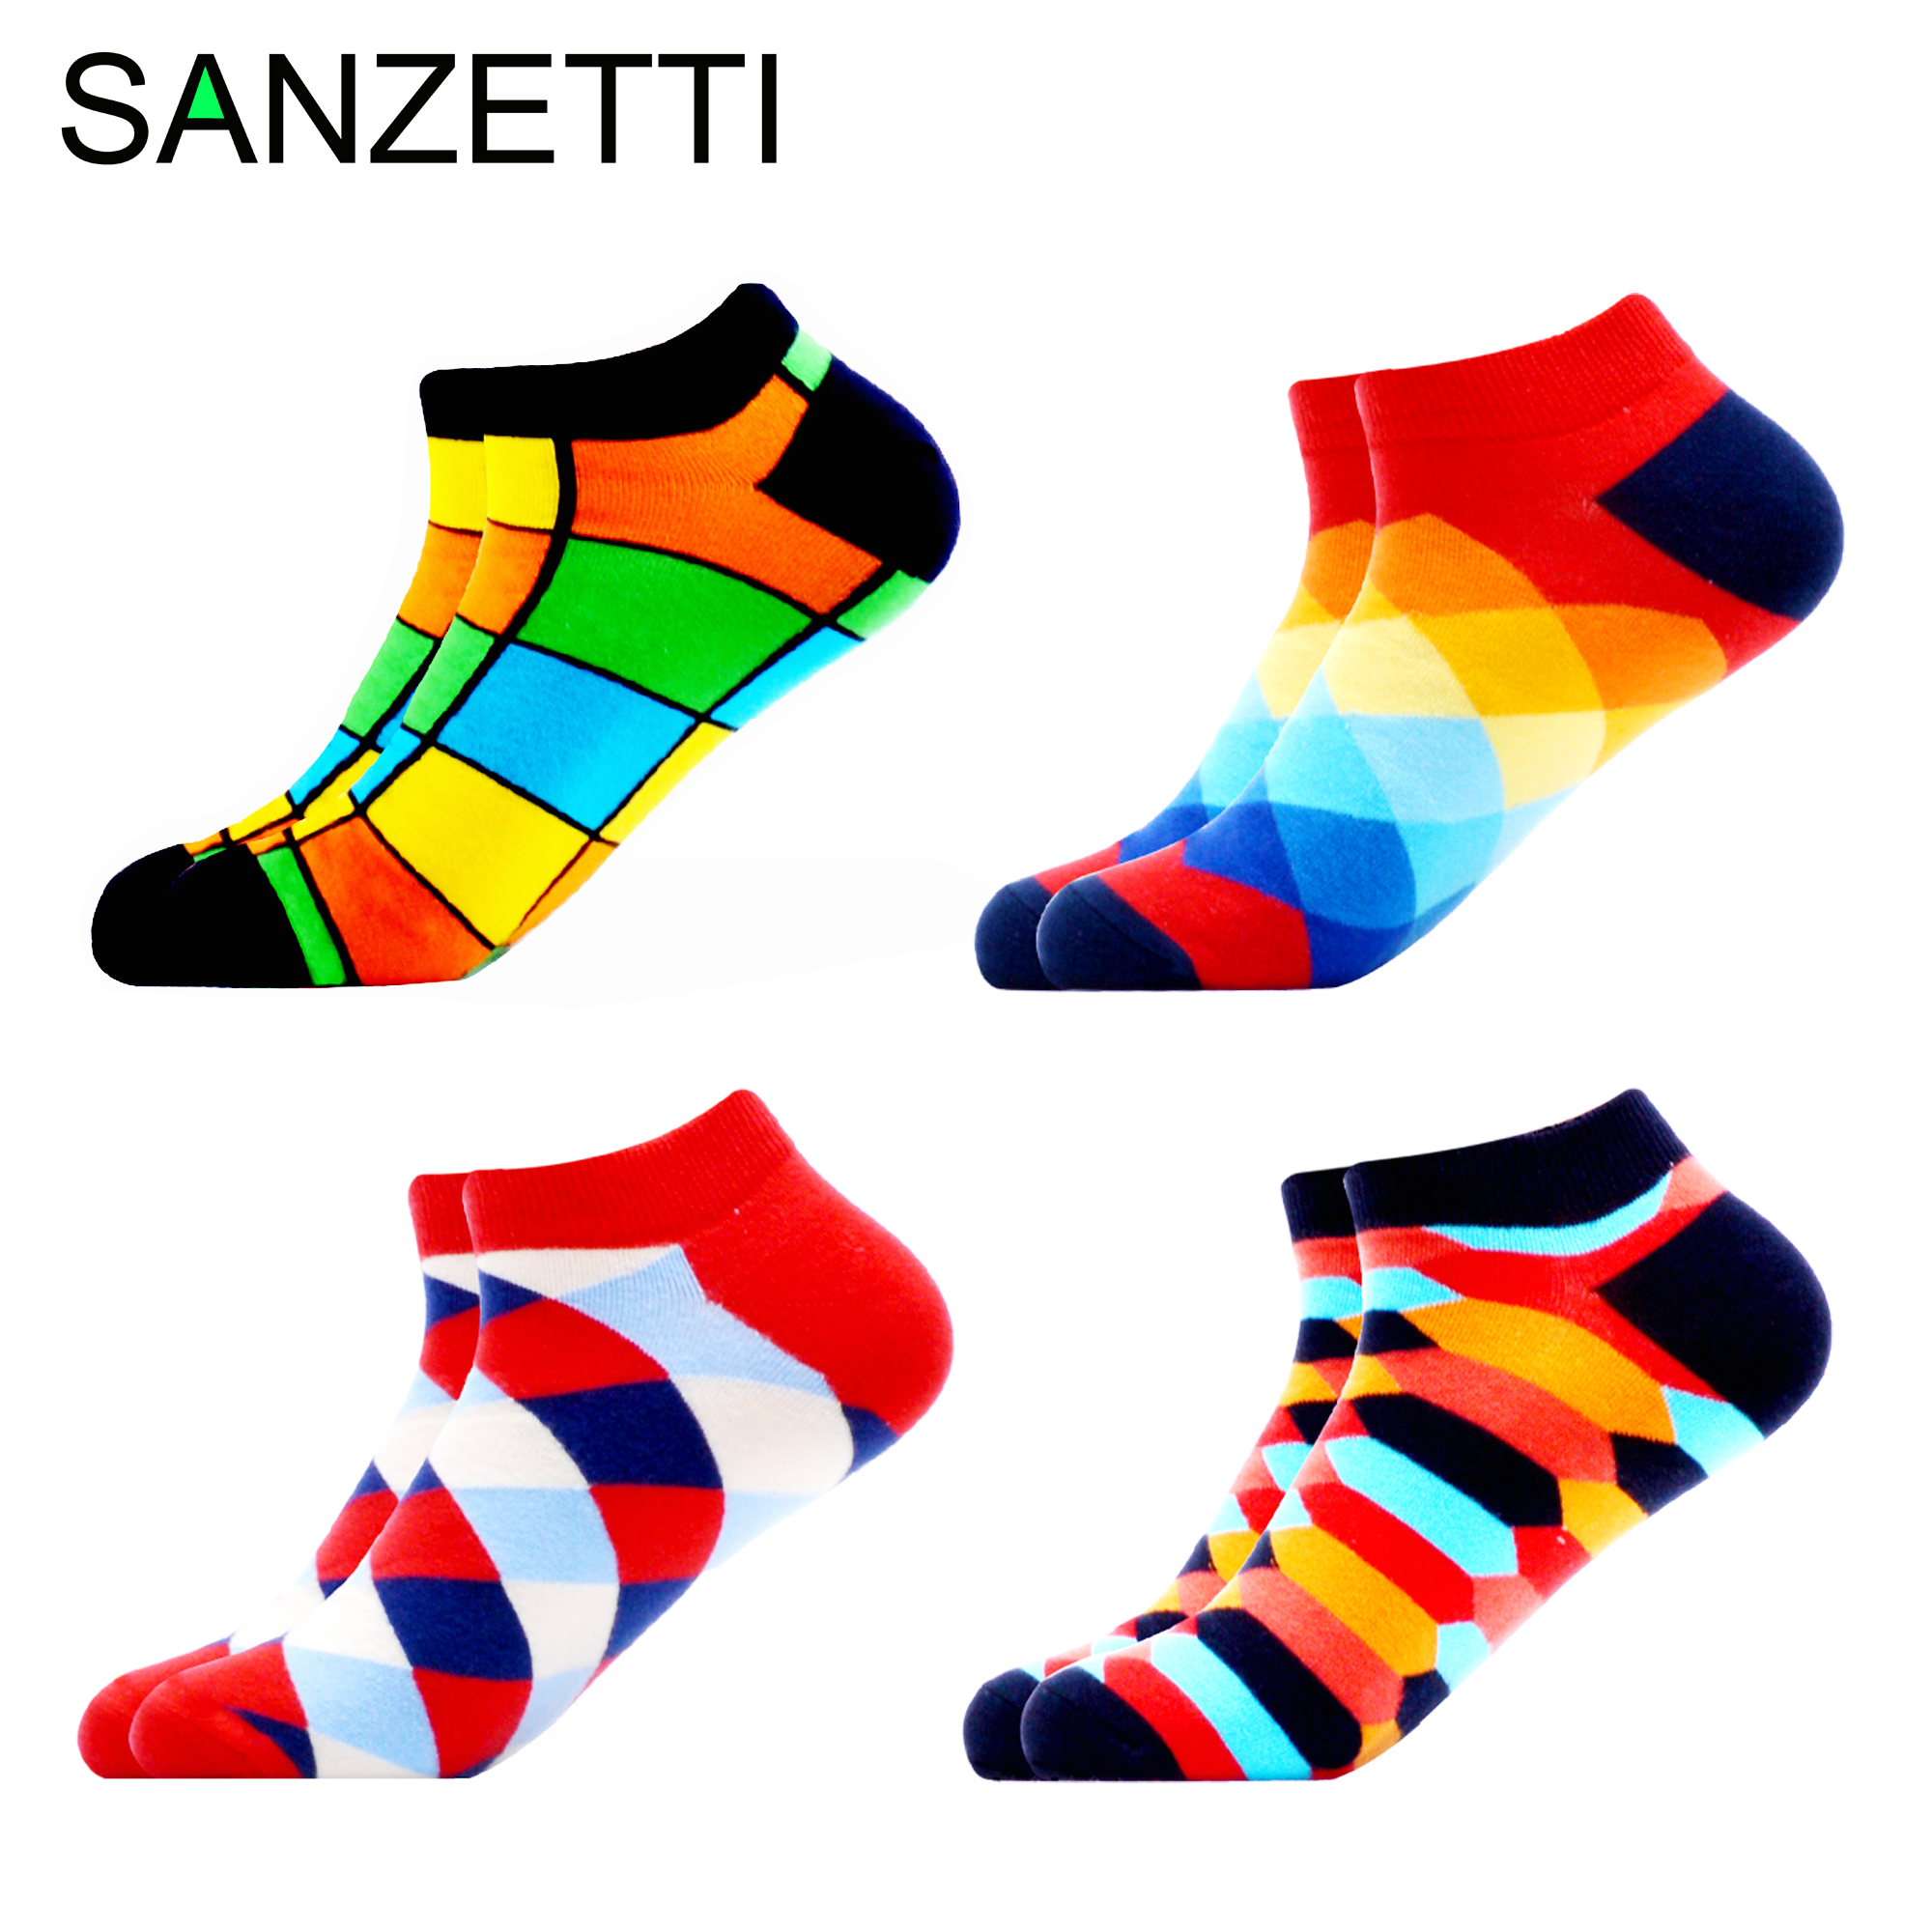 SANZETTI Men's Colorful Happy Funny Socks Brand Quality Combed Cotton Comfortable Socks Plaid Stripes Animal Fruit Pattern Socks